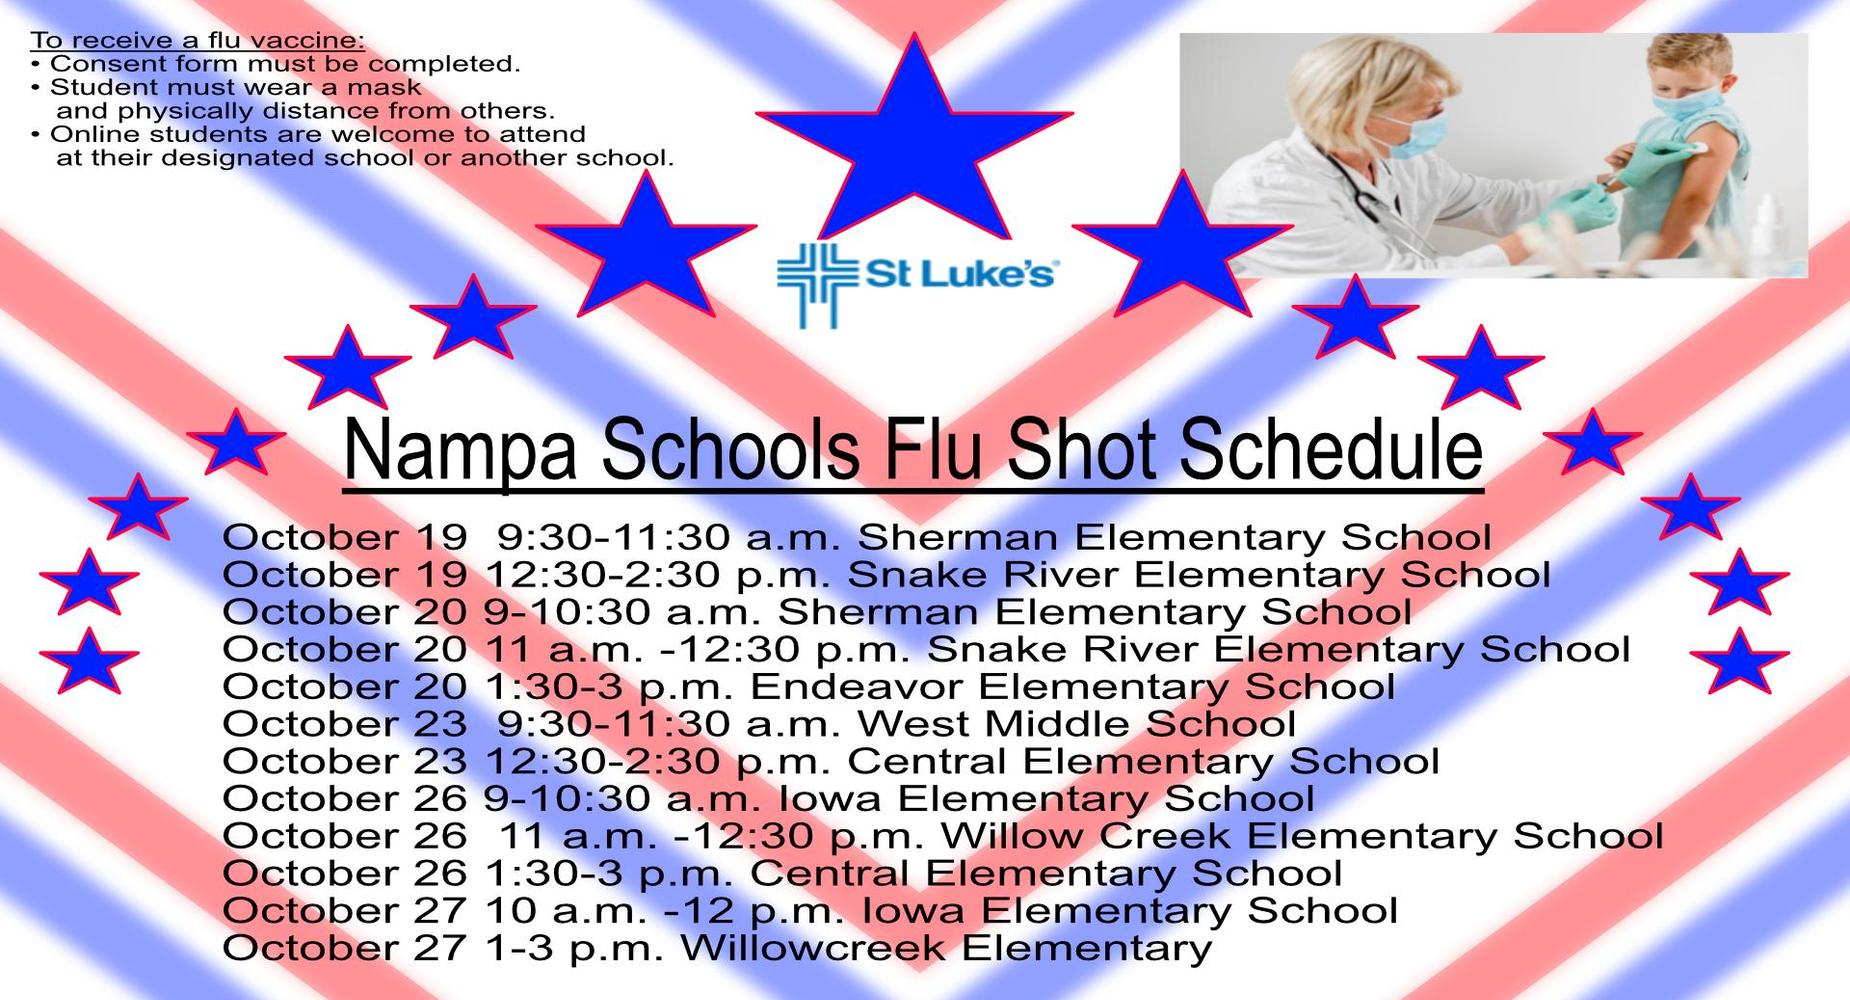 school flu shots - where to get them